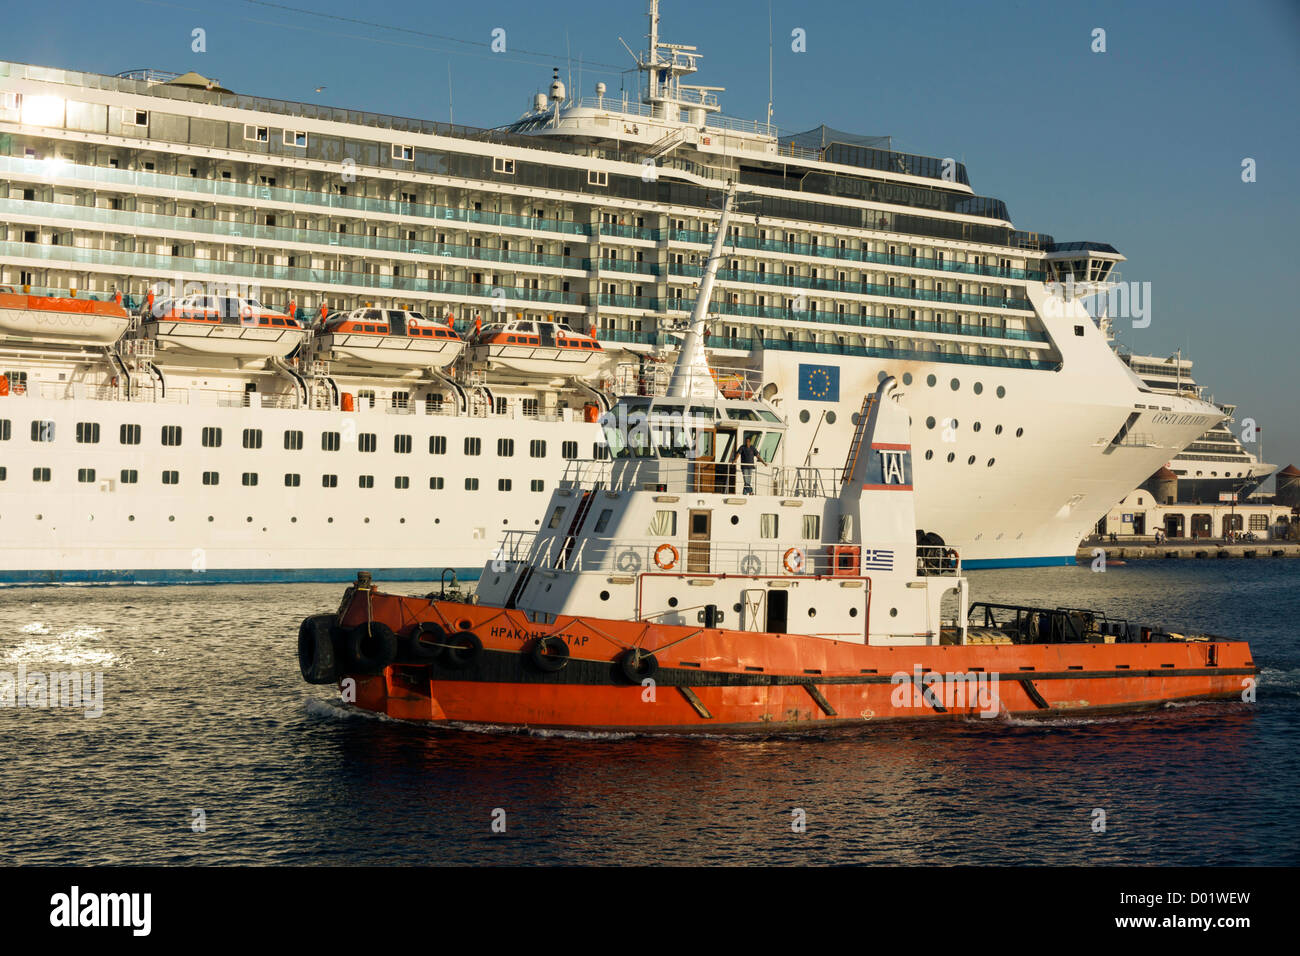 Cruise liners and tug boat in Rhodes, Rhodos, harbour - Stock Image